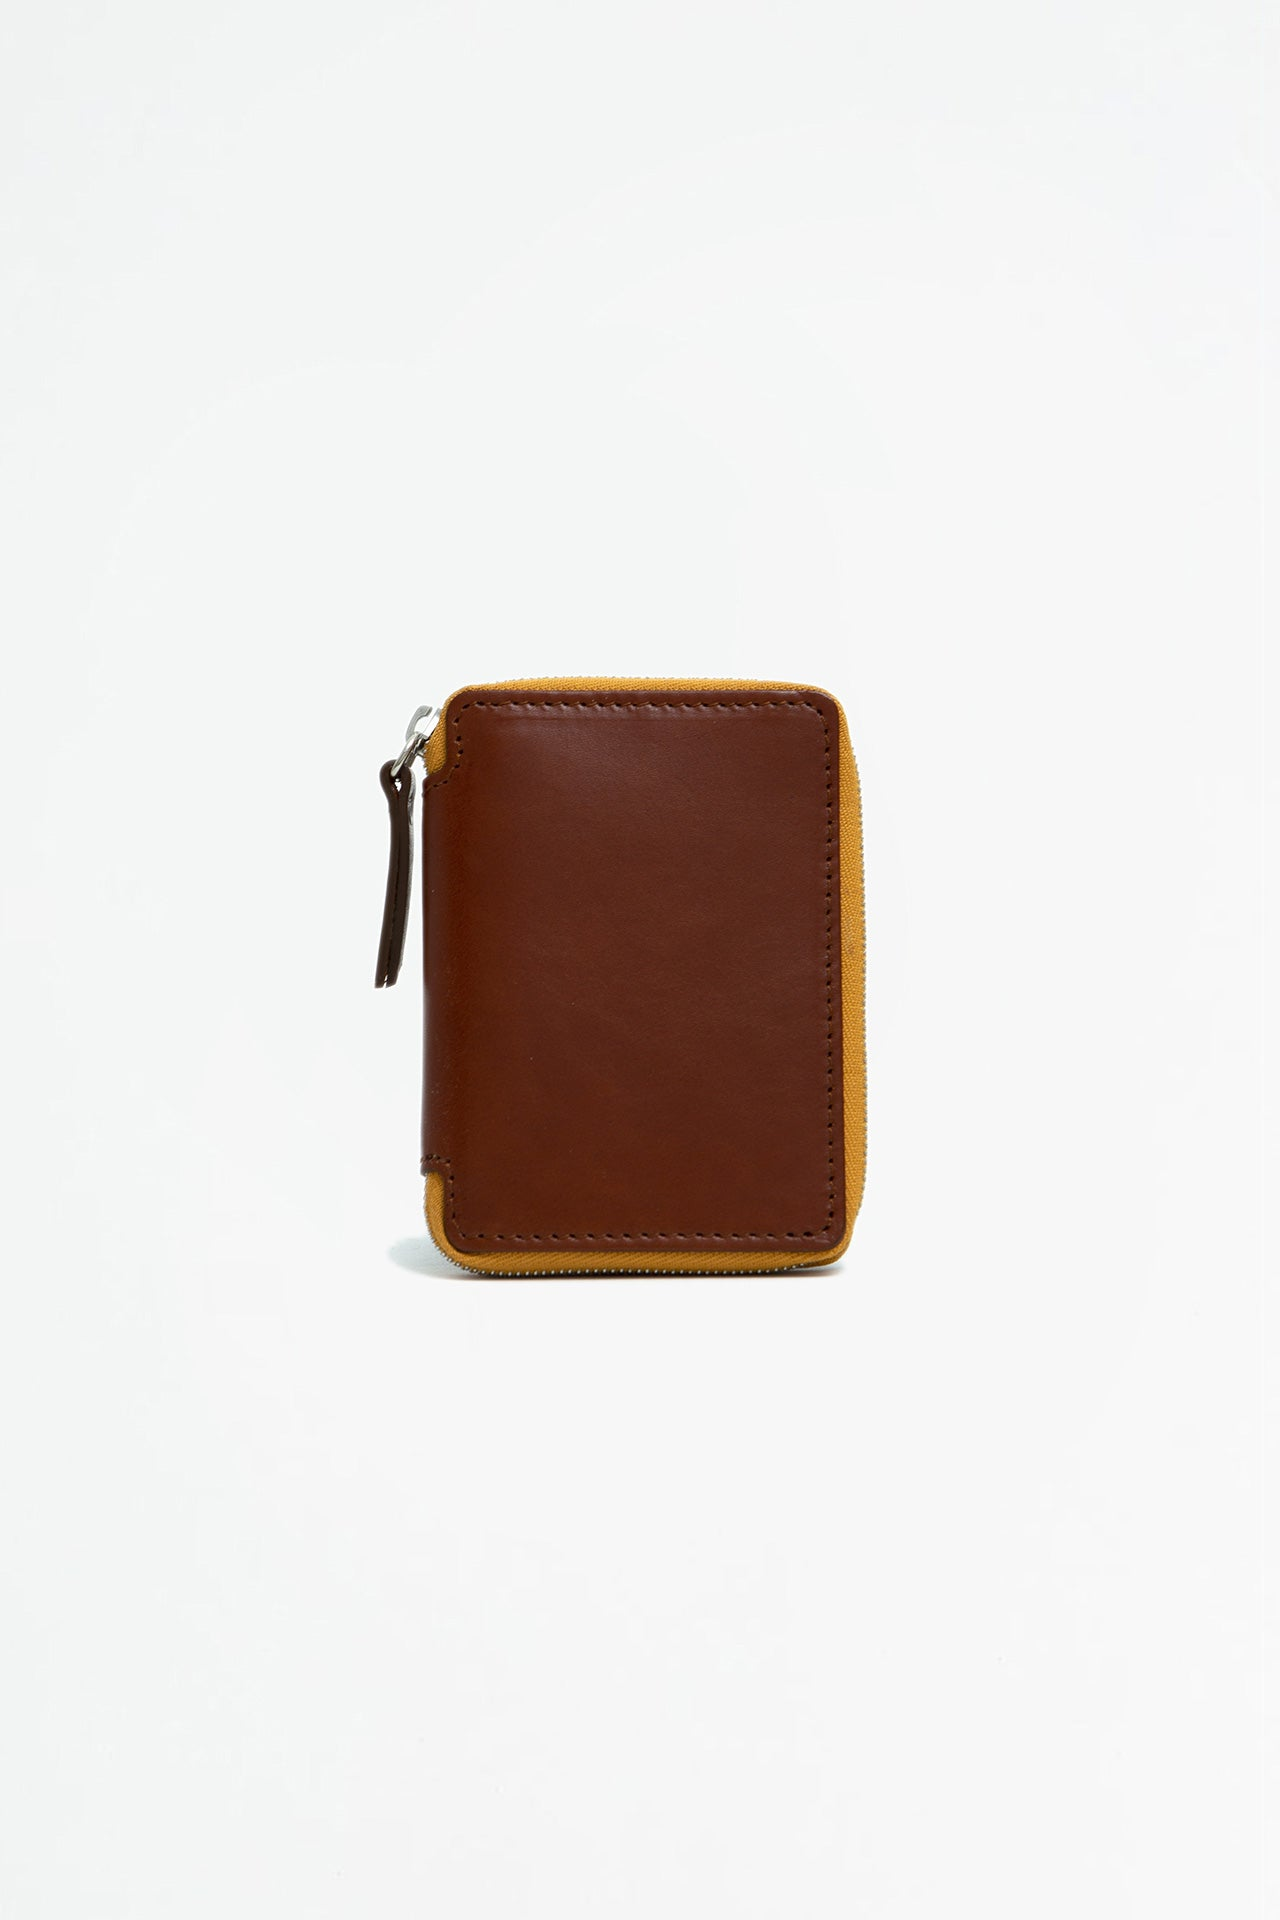 Small zipped wallet brown